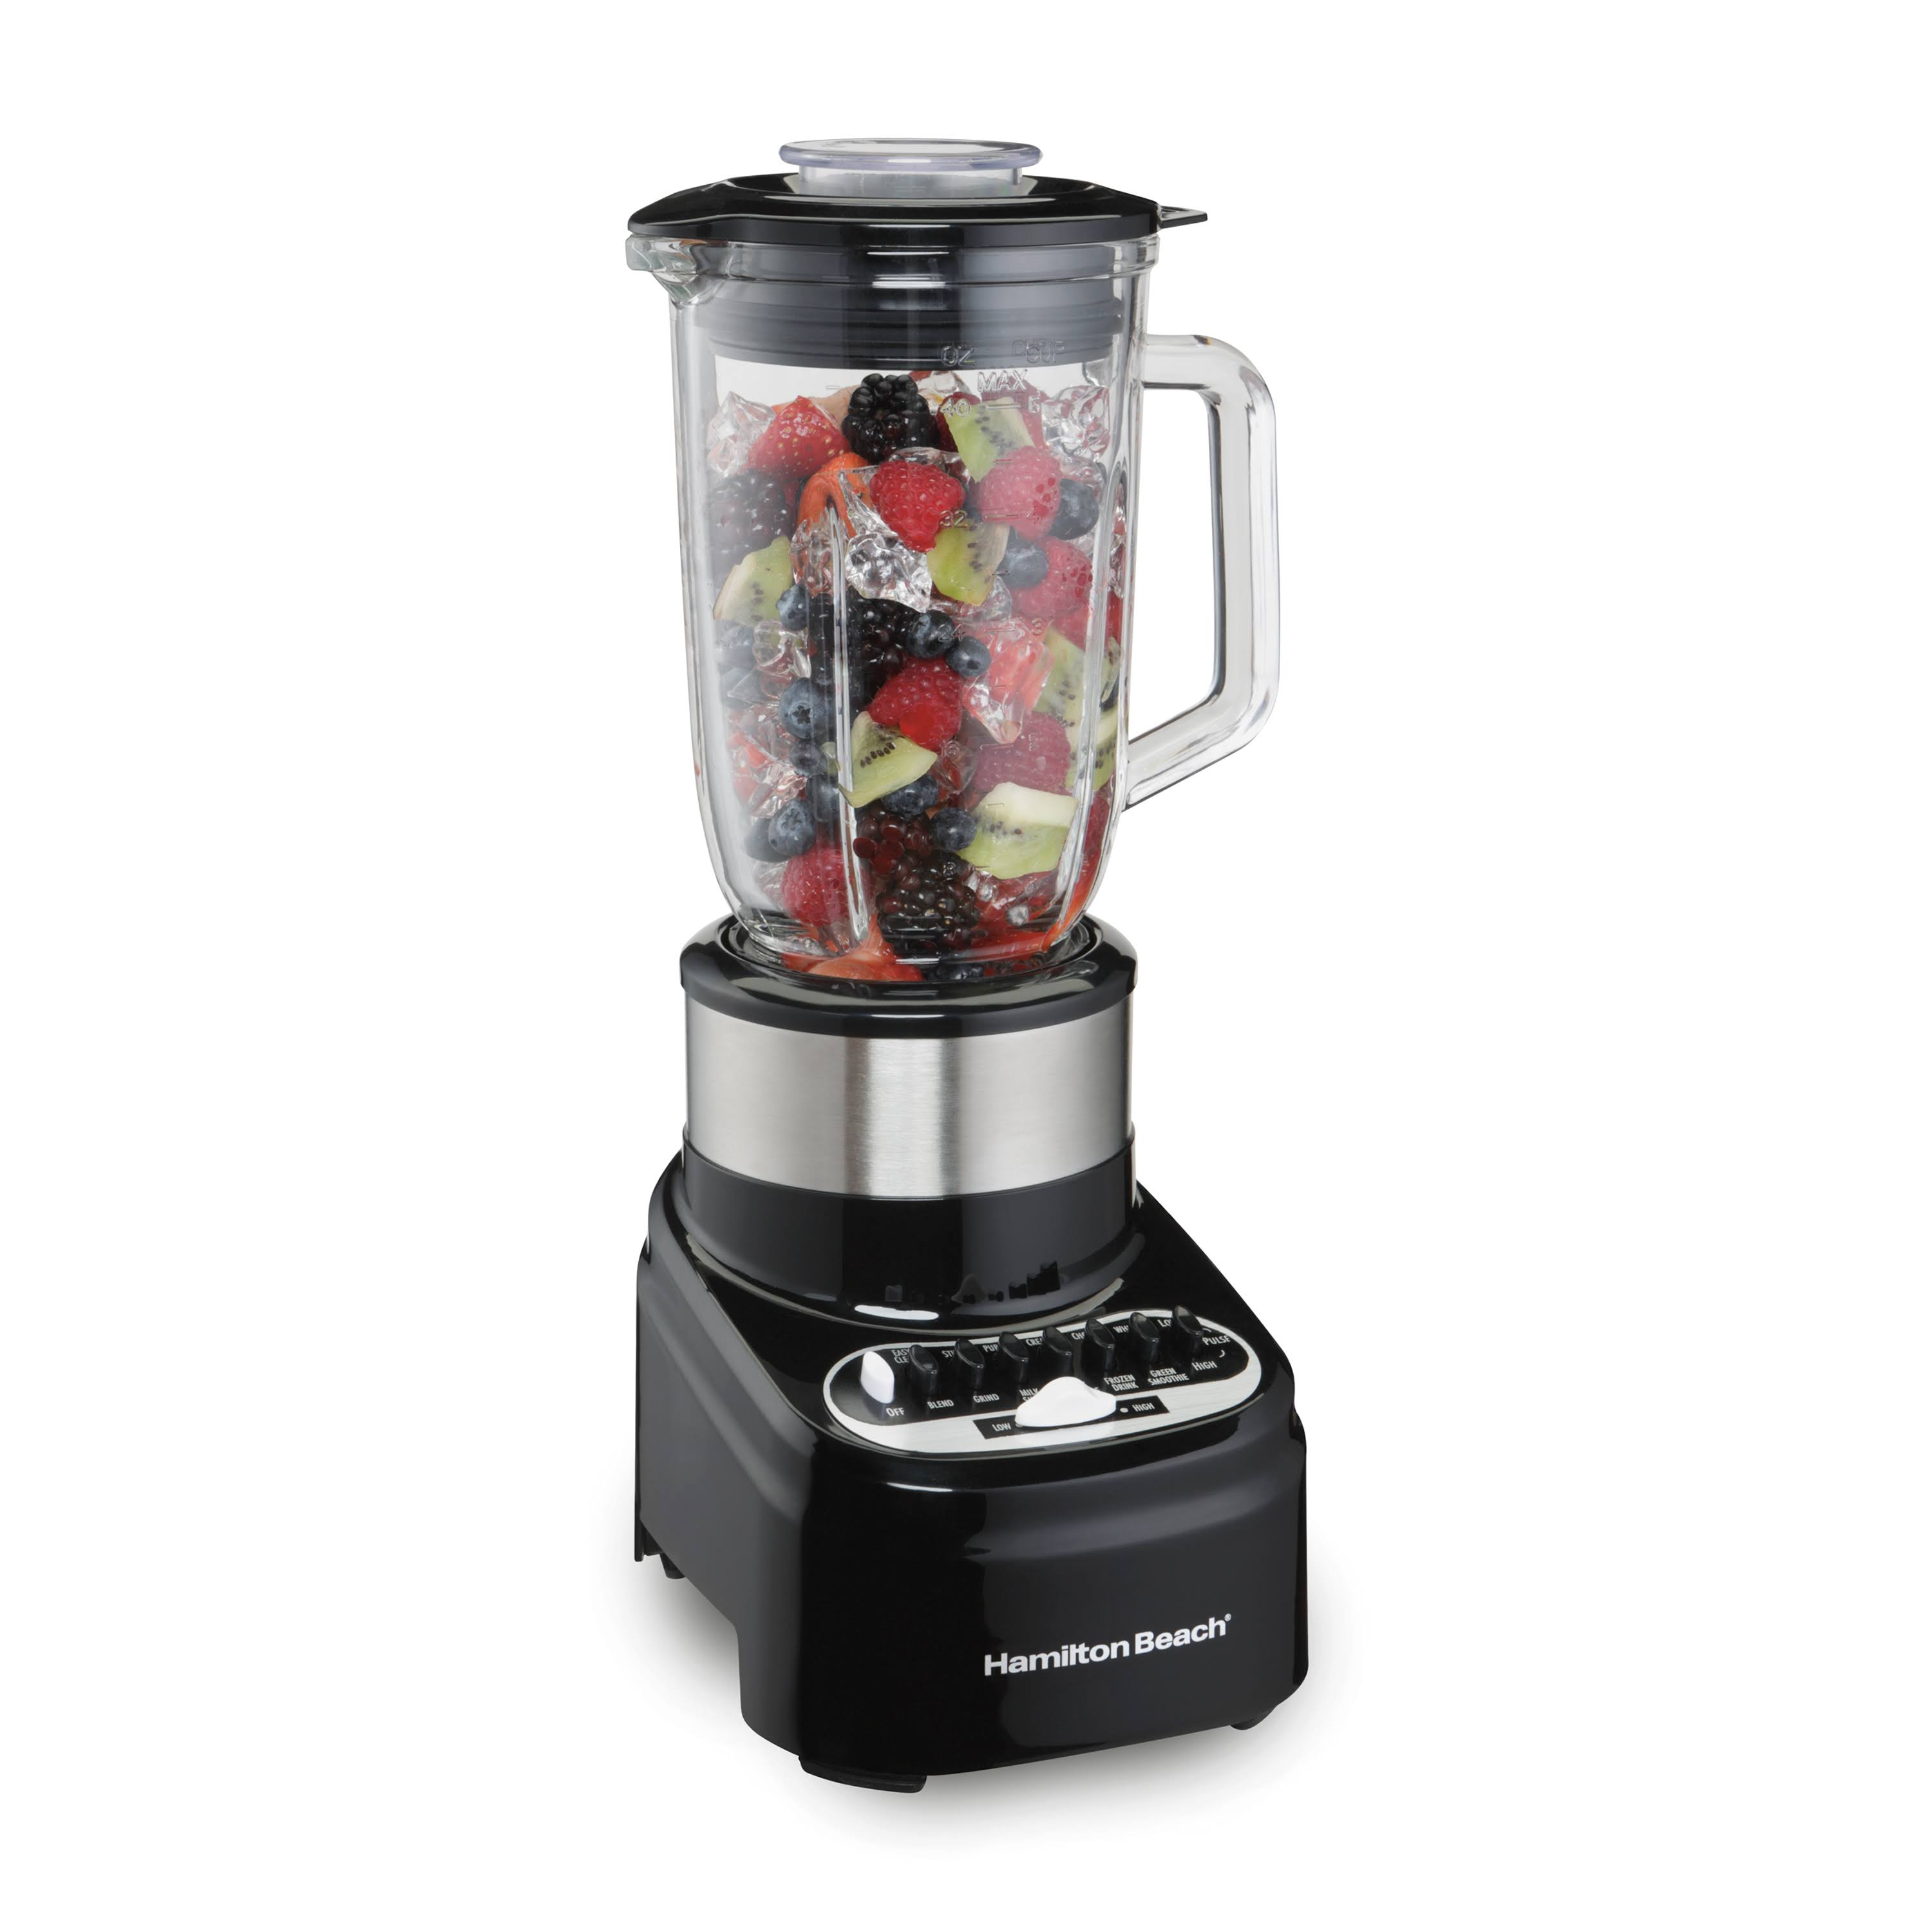 Hamilton Beach 54210 Multi-Mix Blender - 1.2 qt